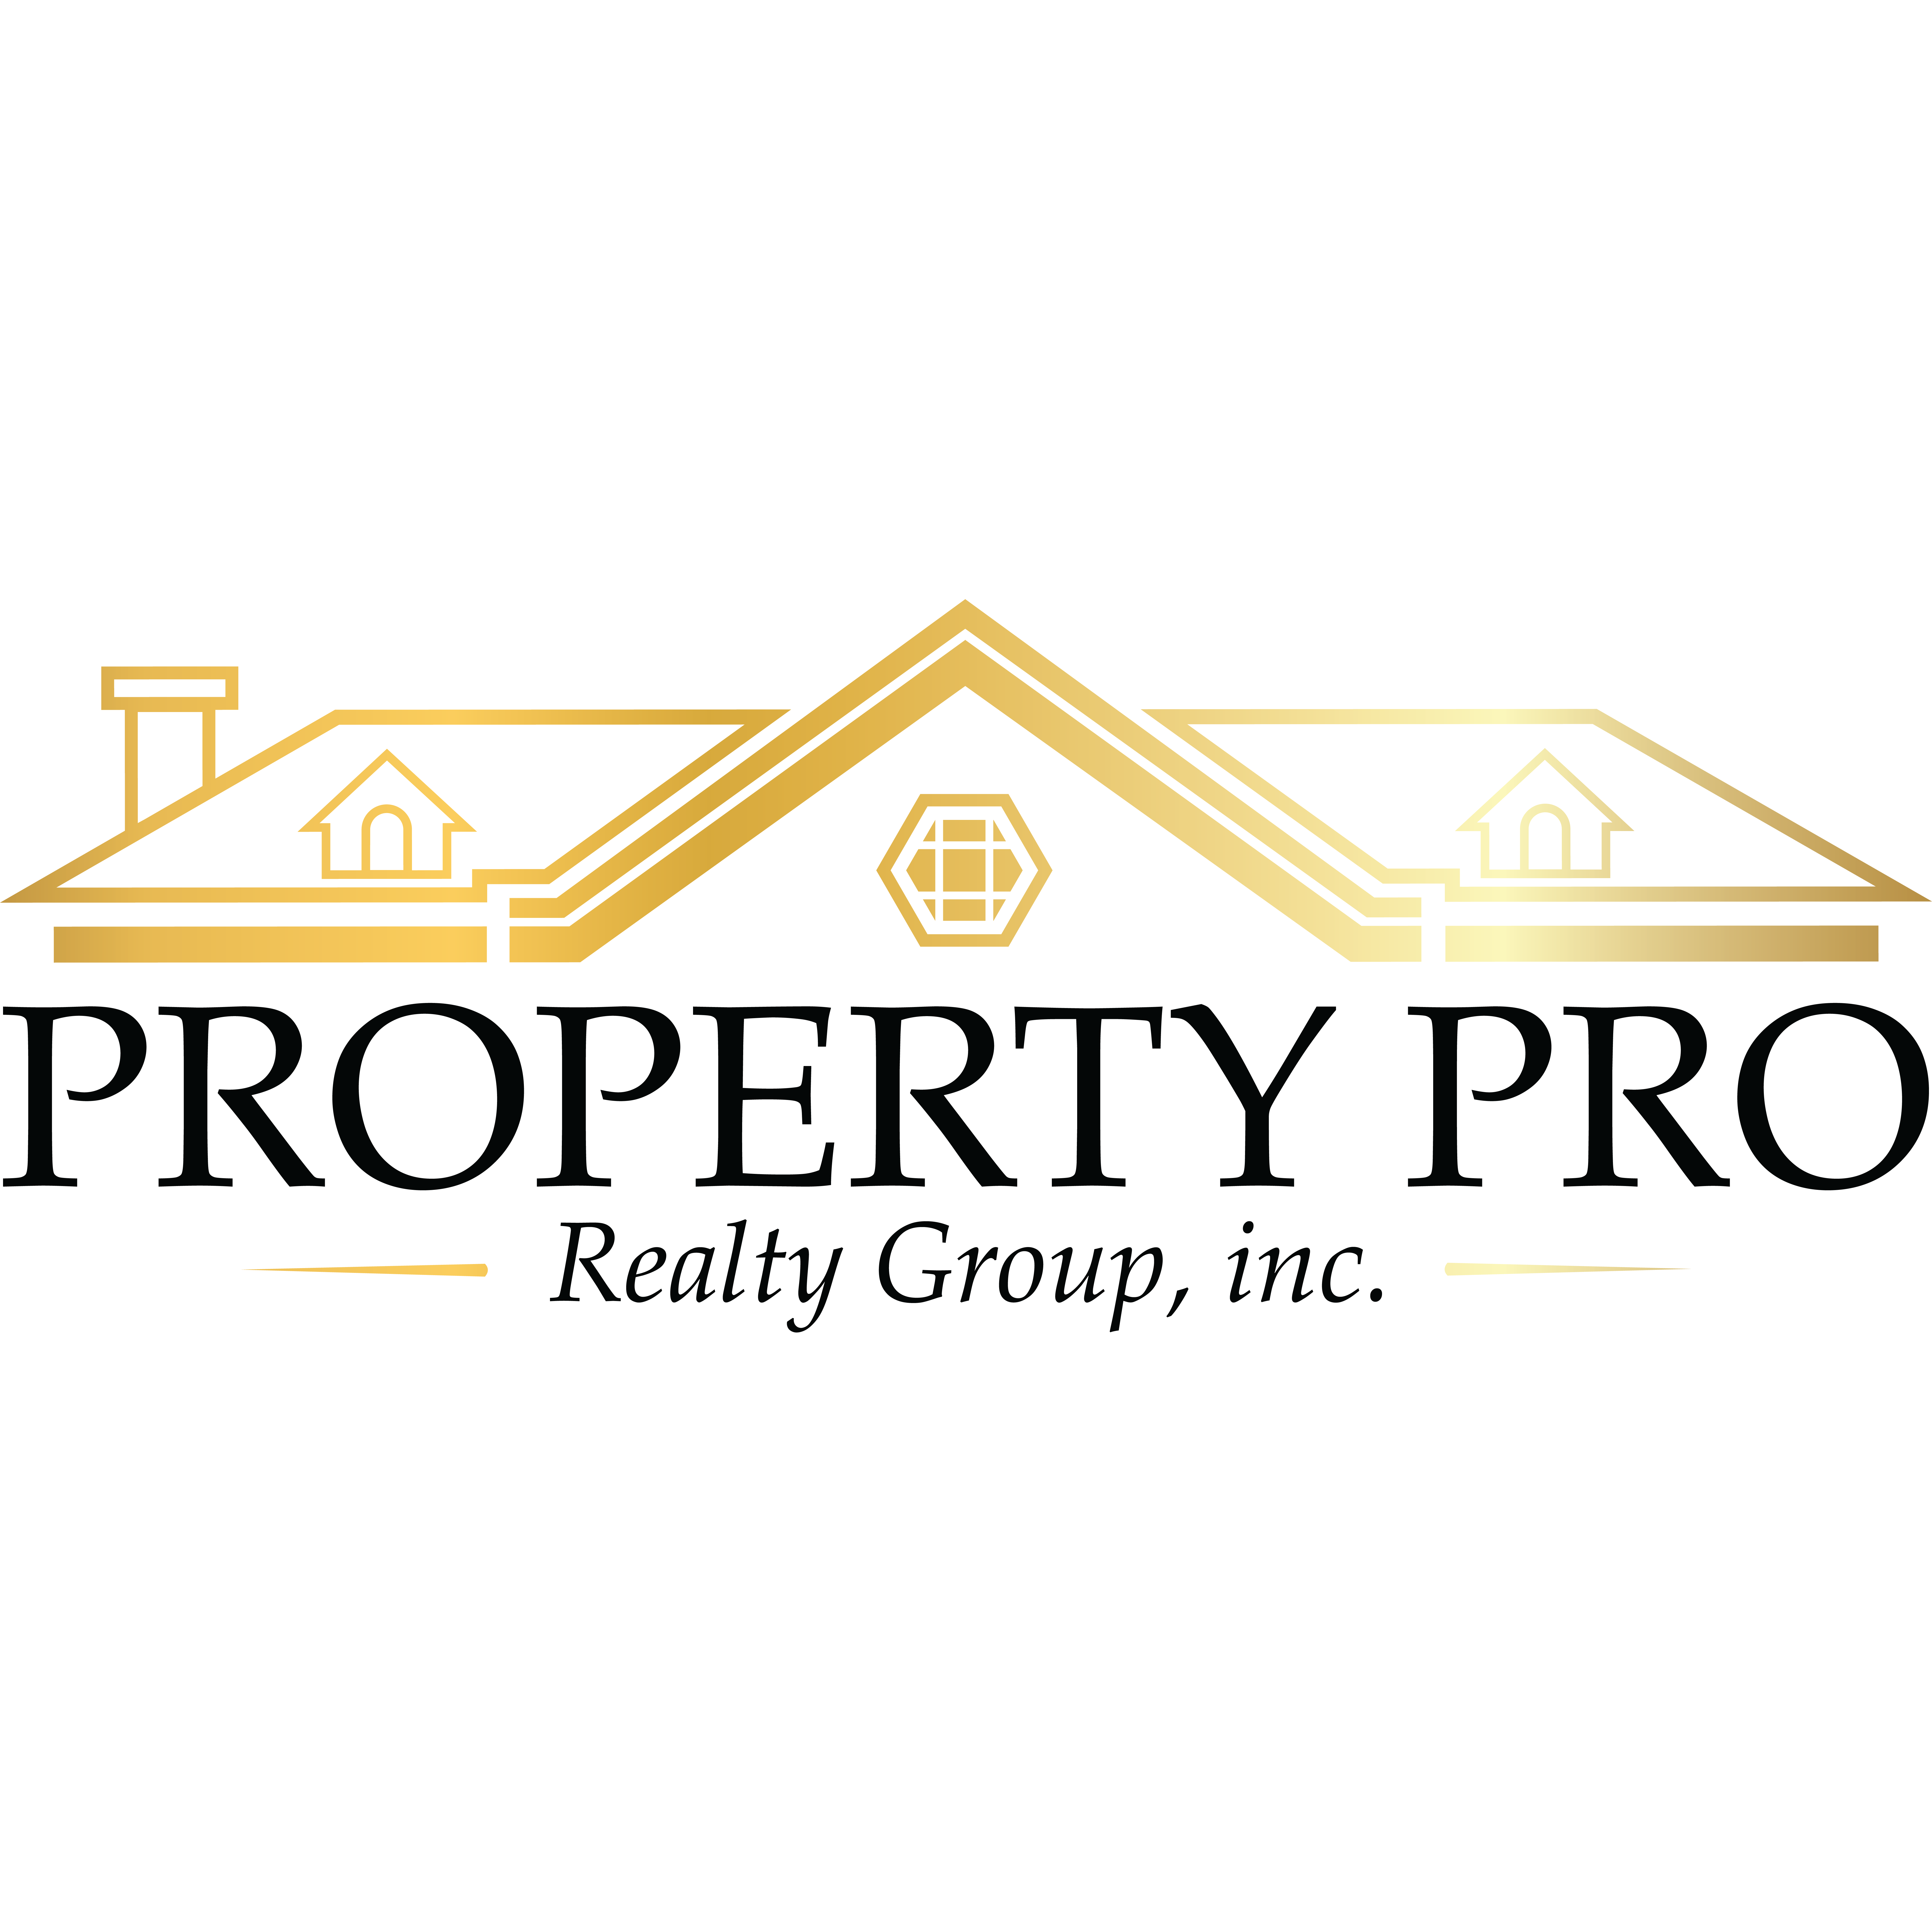 Property Pro Realty Group, inc.